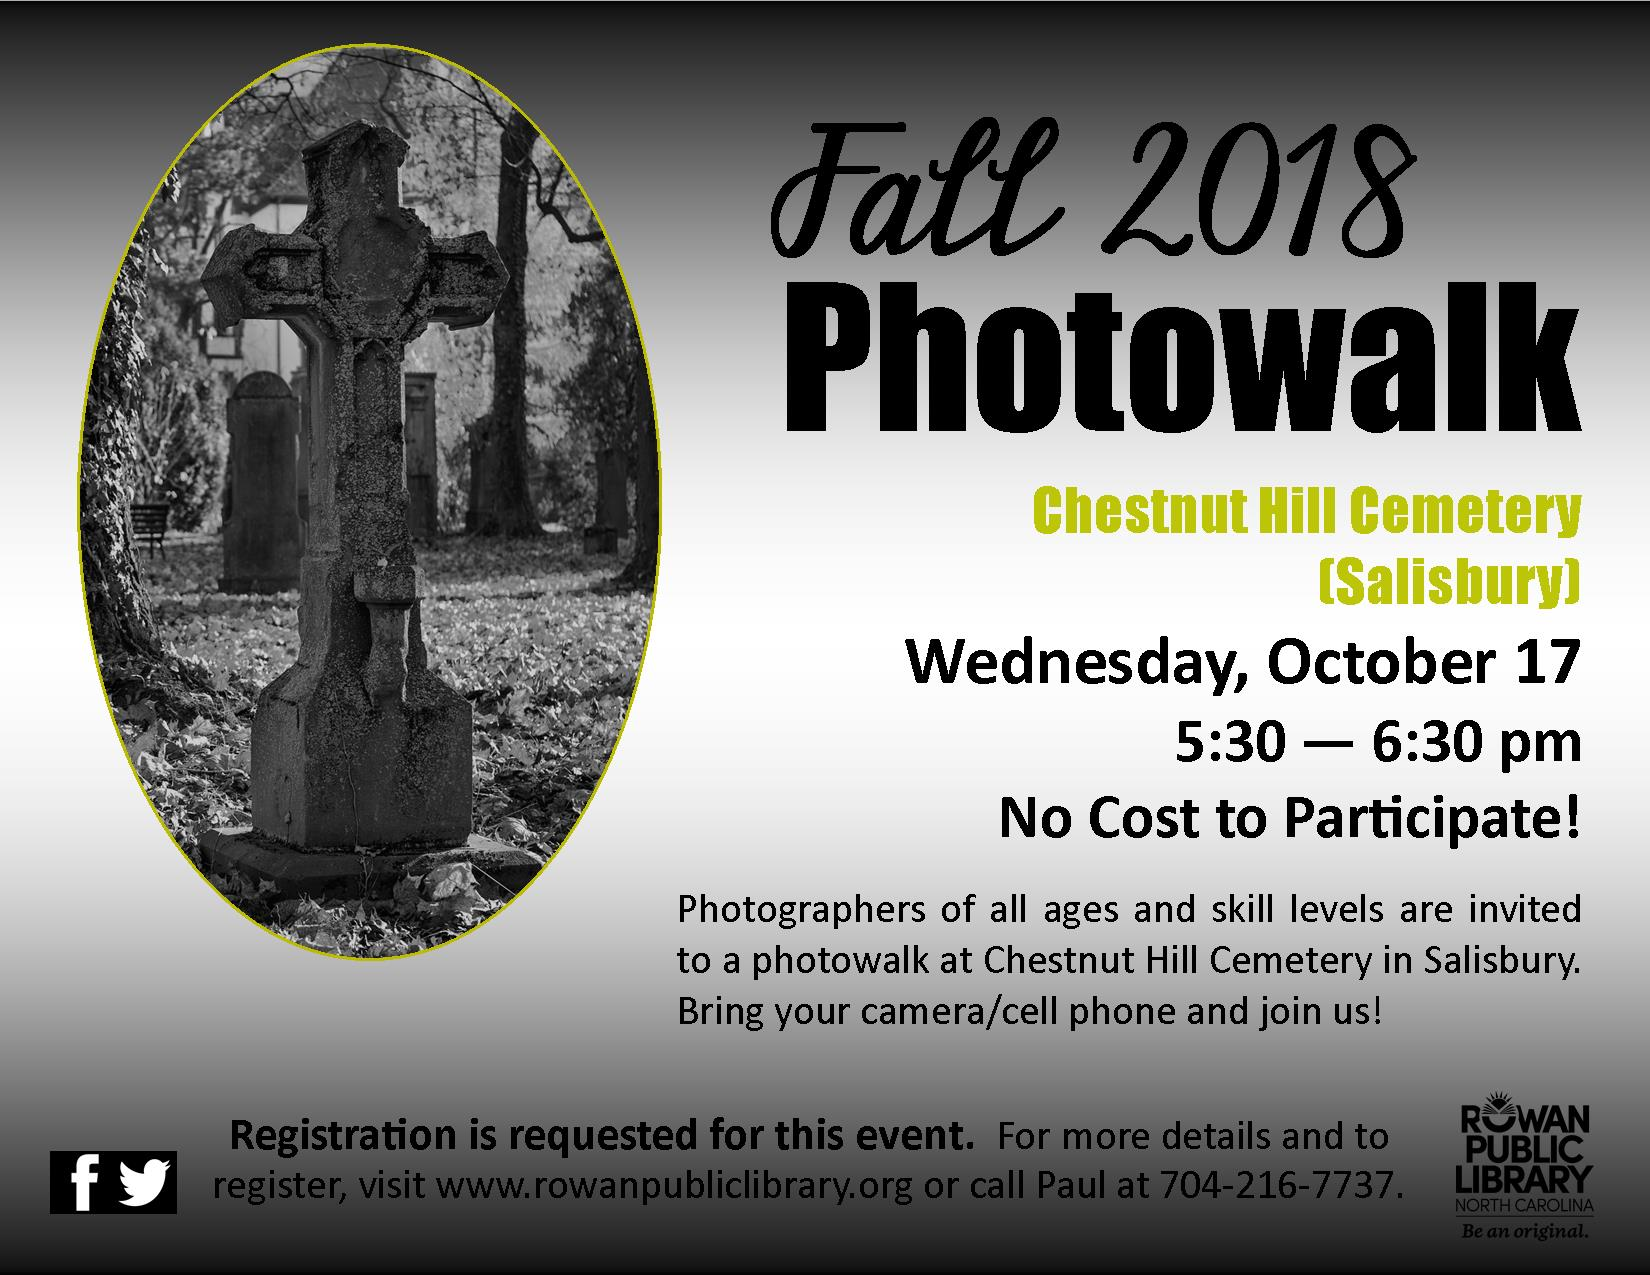 Fall 2018 Photowalk - Chestnut Hill Cemetery (Salisbury)